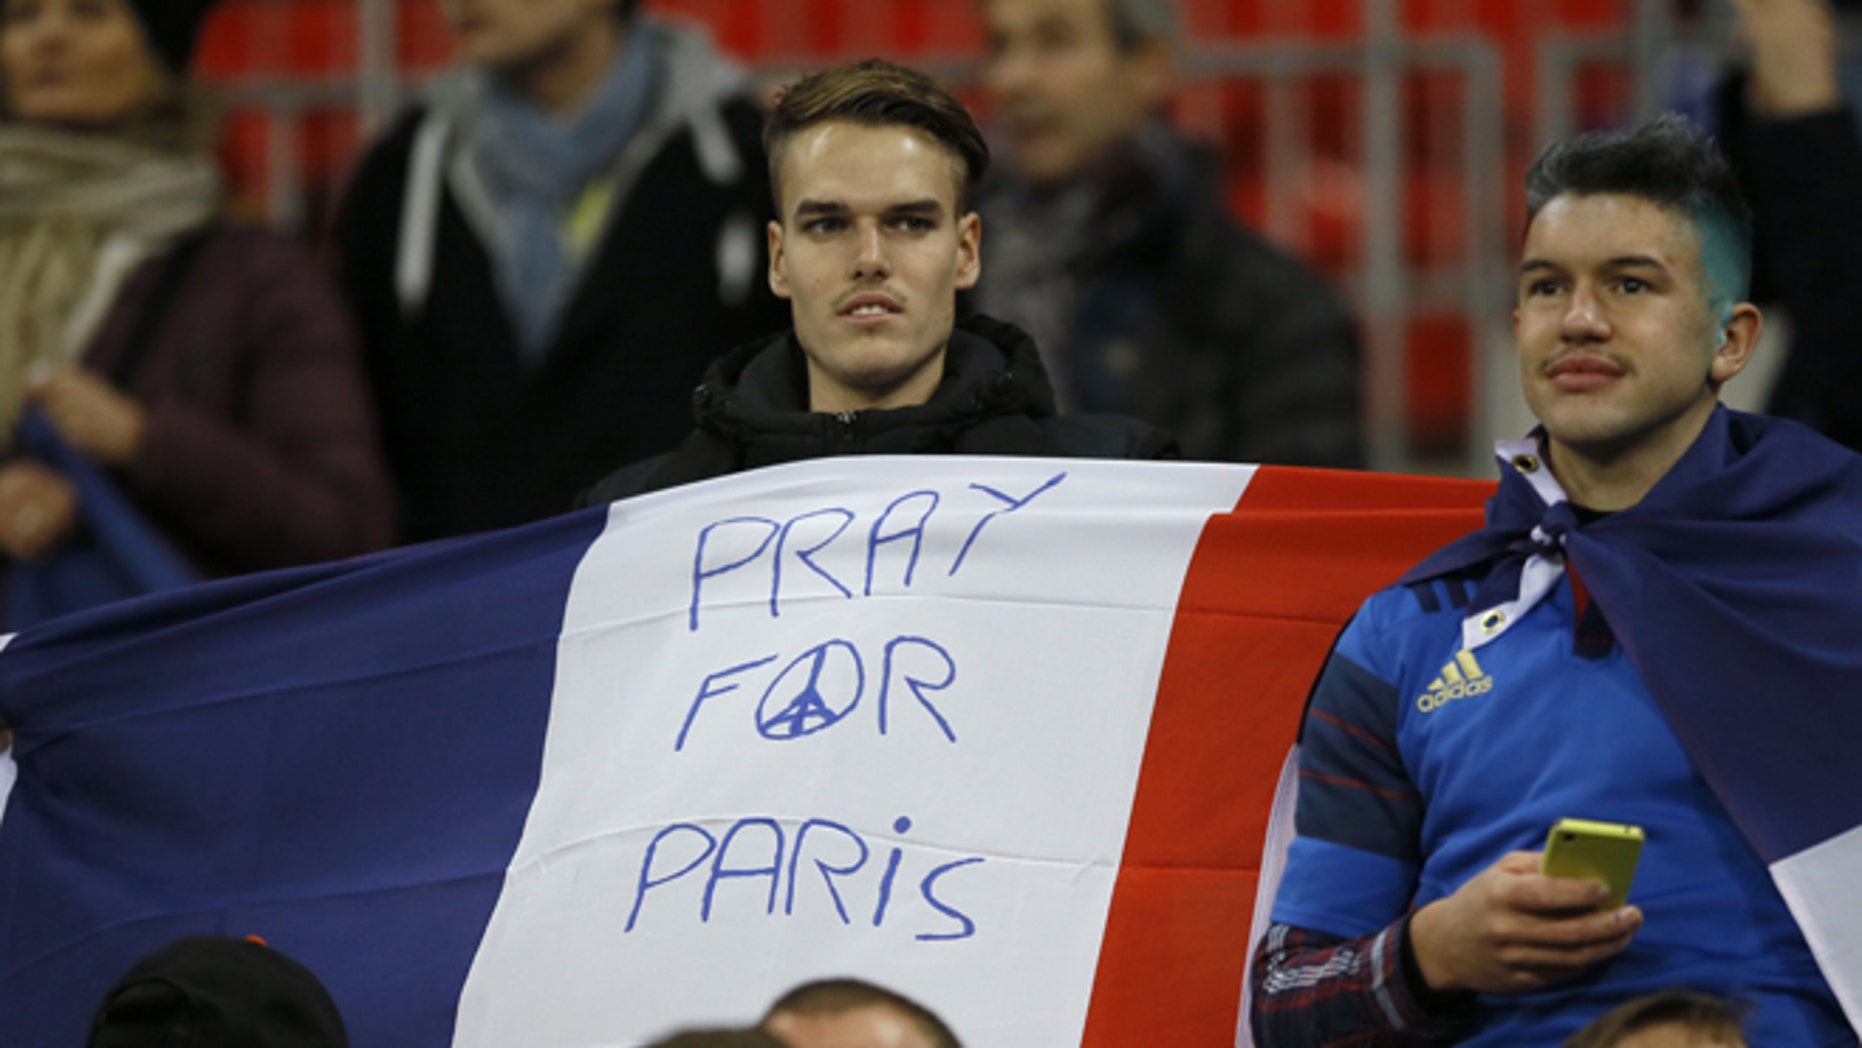 A man holds a French flag ahead of the international friendly soccer match between England and France at Wembley Stadium in London, Tuesday, Nov. 17, 2015. France is playing England at Wembley on Tuesday after the countries decided the match should go ahead despite the deadly attacks in Paris last Friday night which killed scores of people. (AP Photo/Kirsty Wigglesworth)